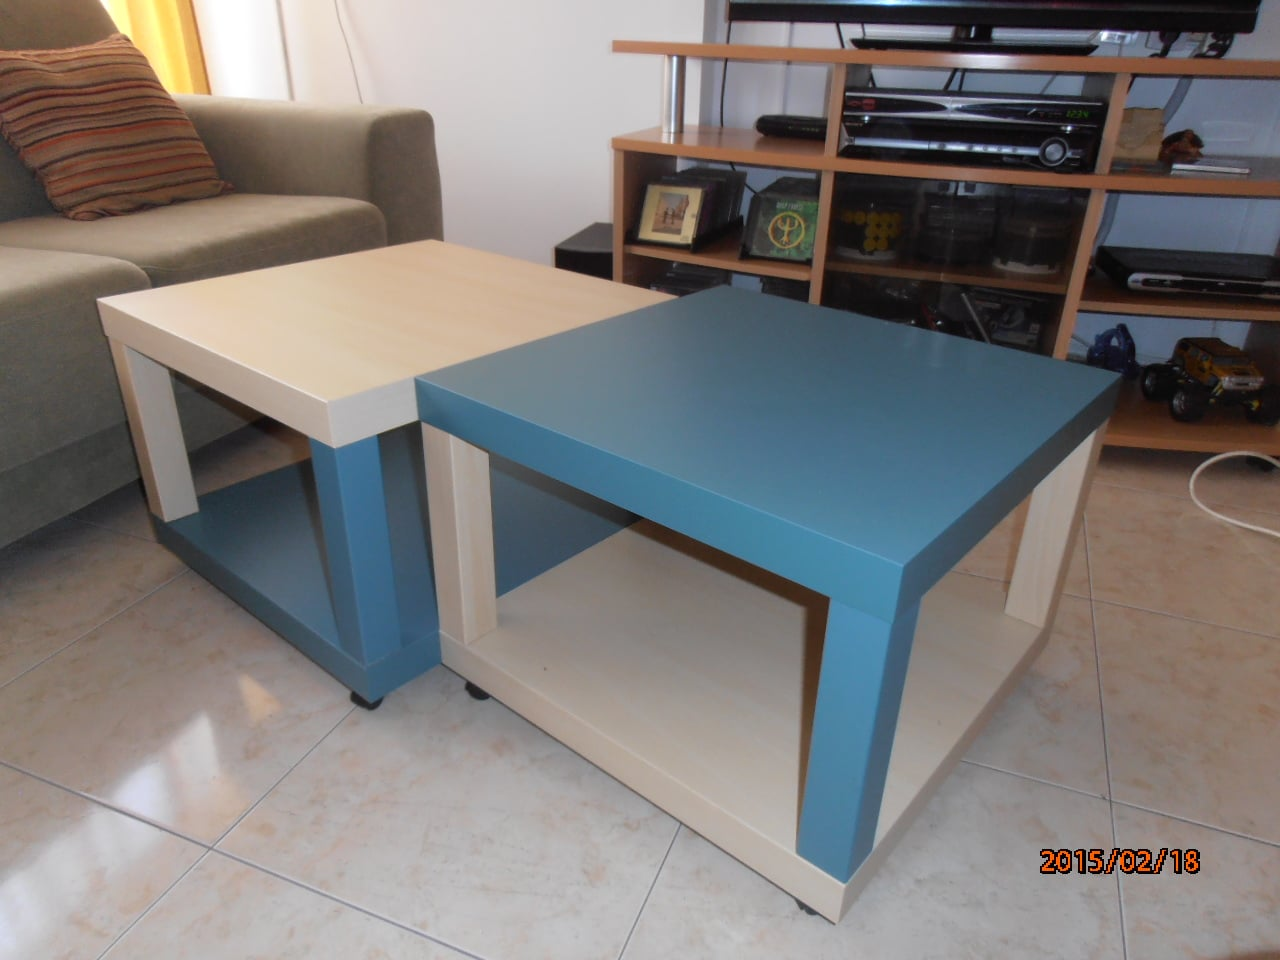 Quad lack coffee table ikea hackers ikea hackers - Ikea petite table basse ...